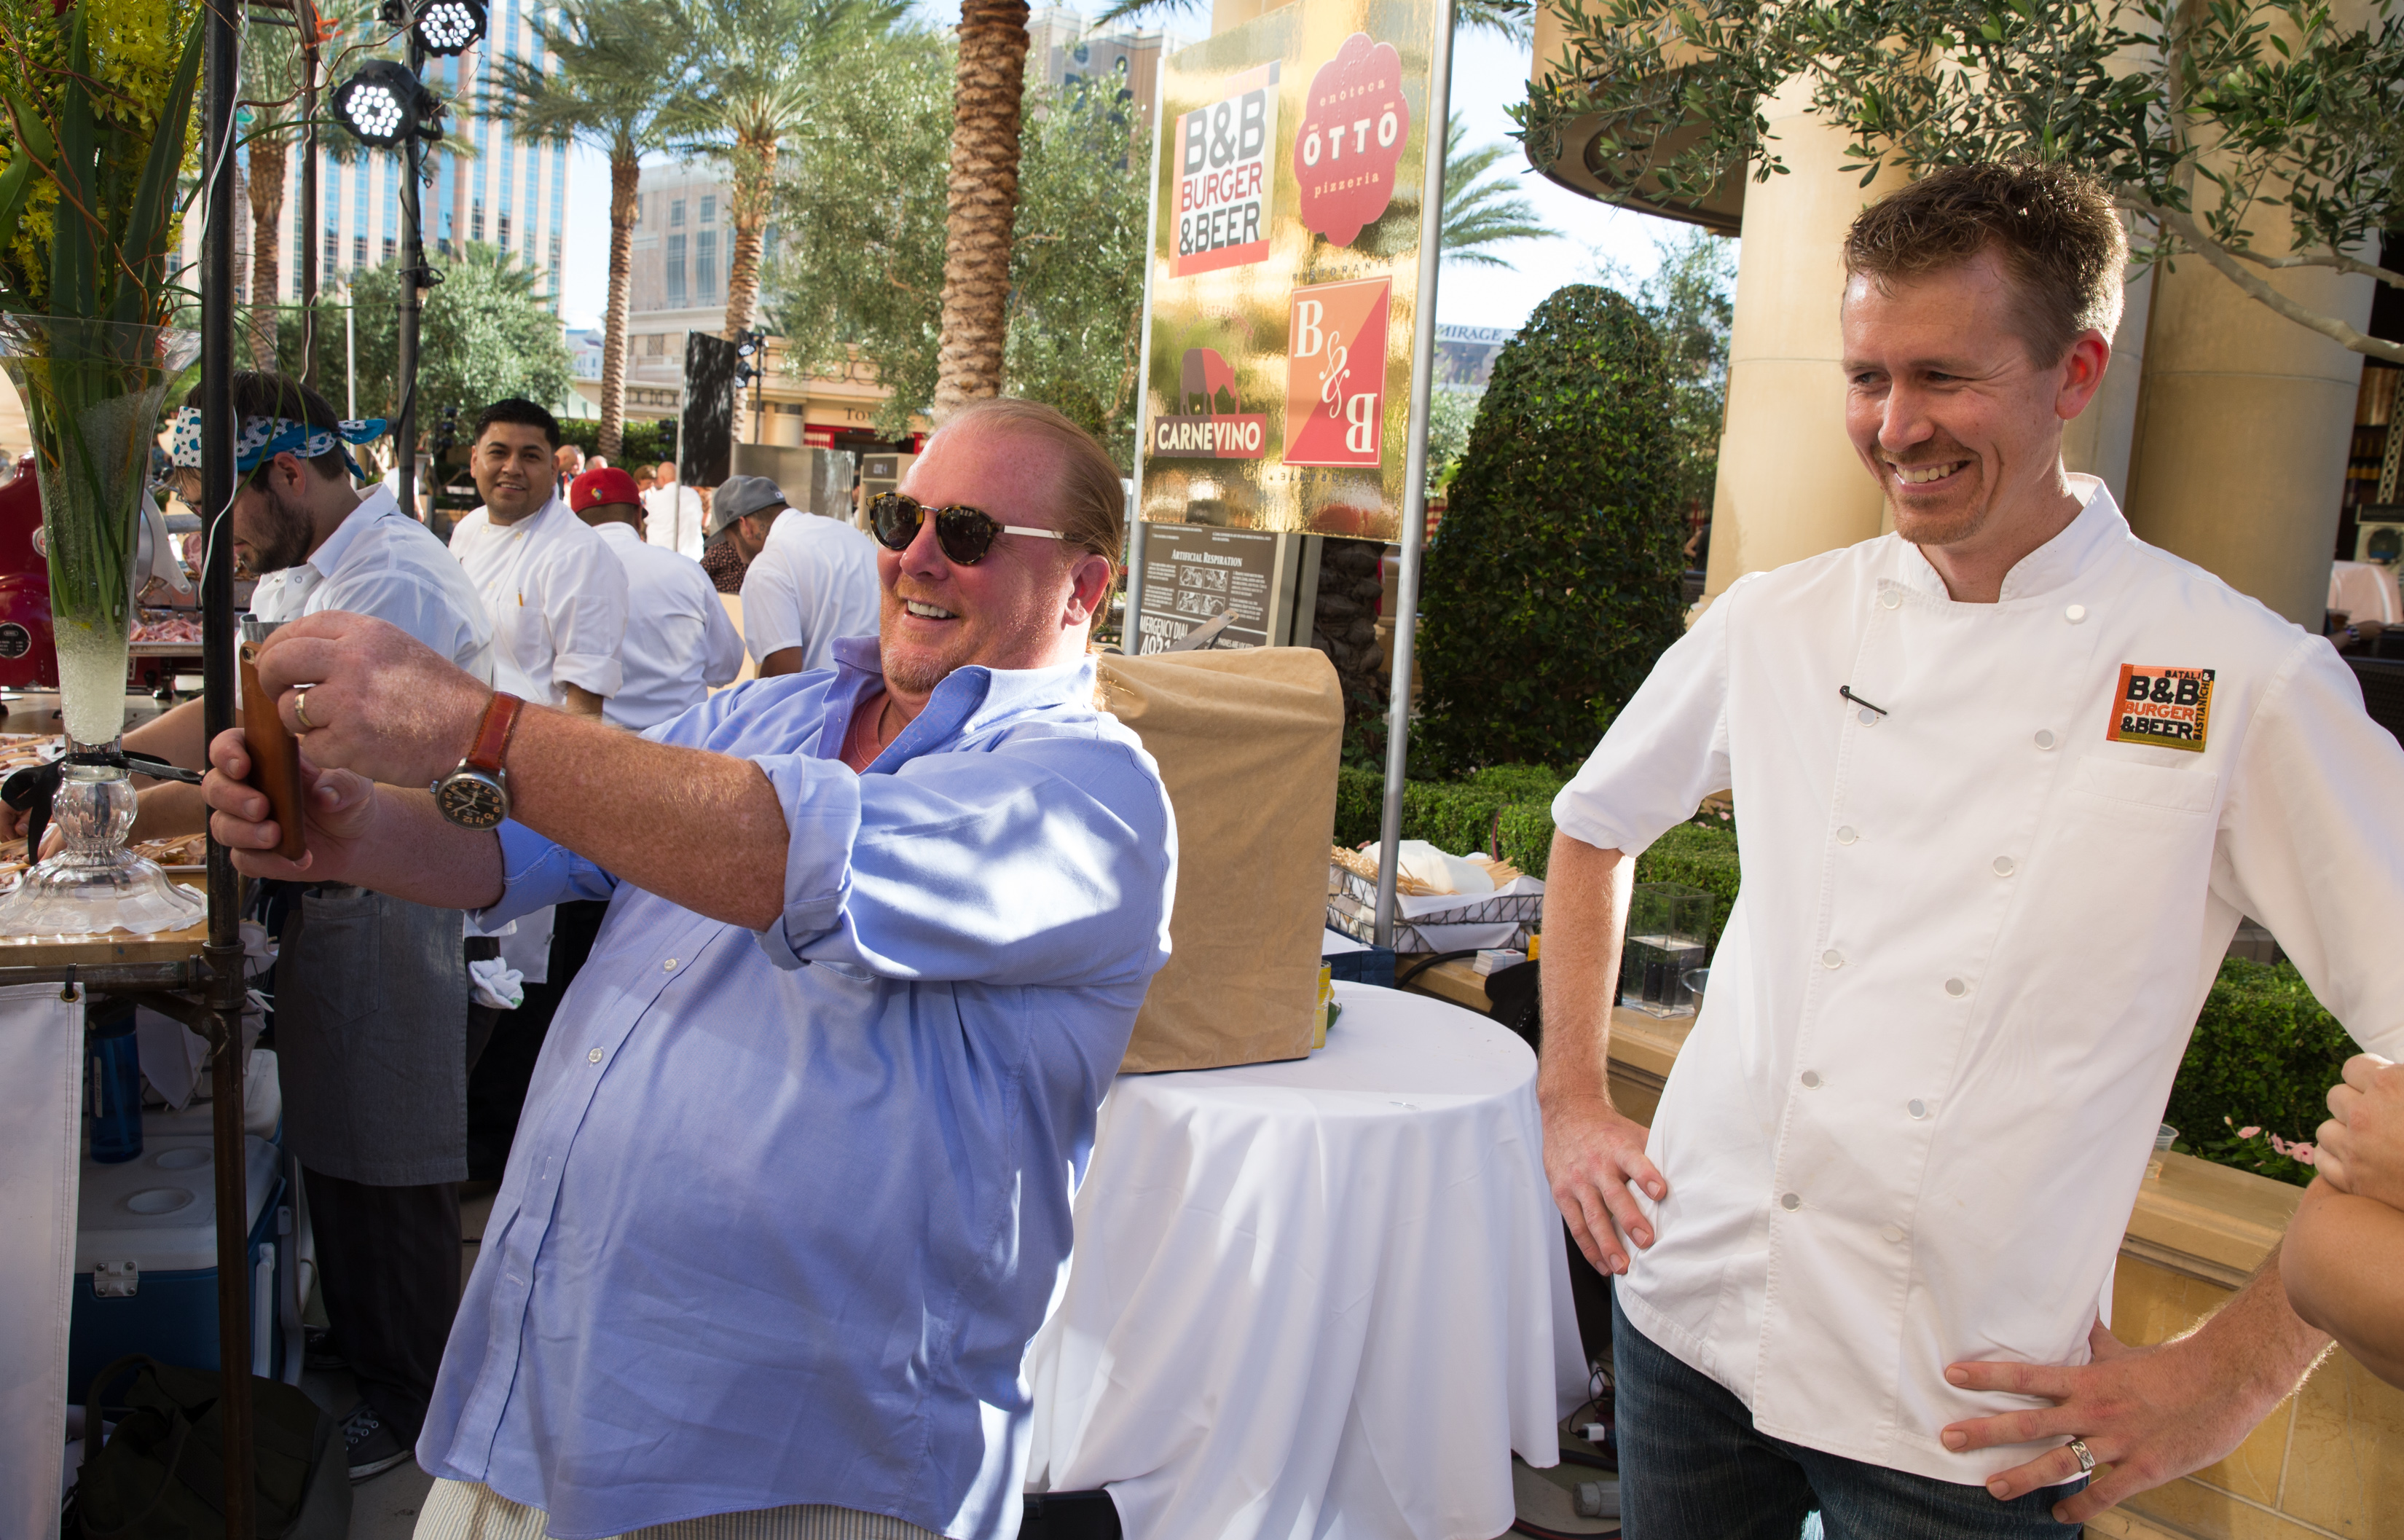 Chef Mario Batali takes a selfie with chef Jason Neve from the B&B empire at the Carnival of Cuisine.